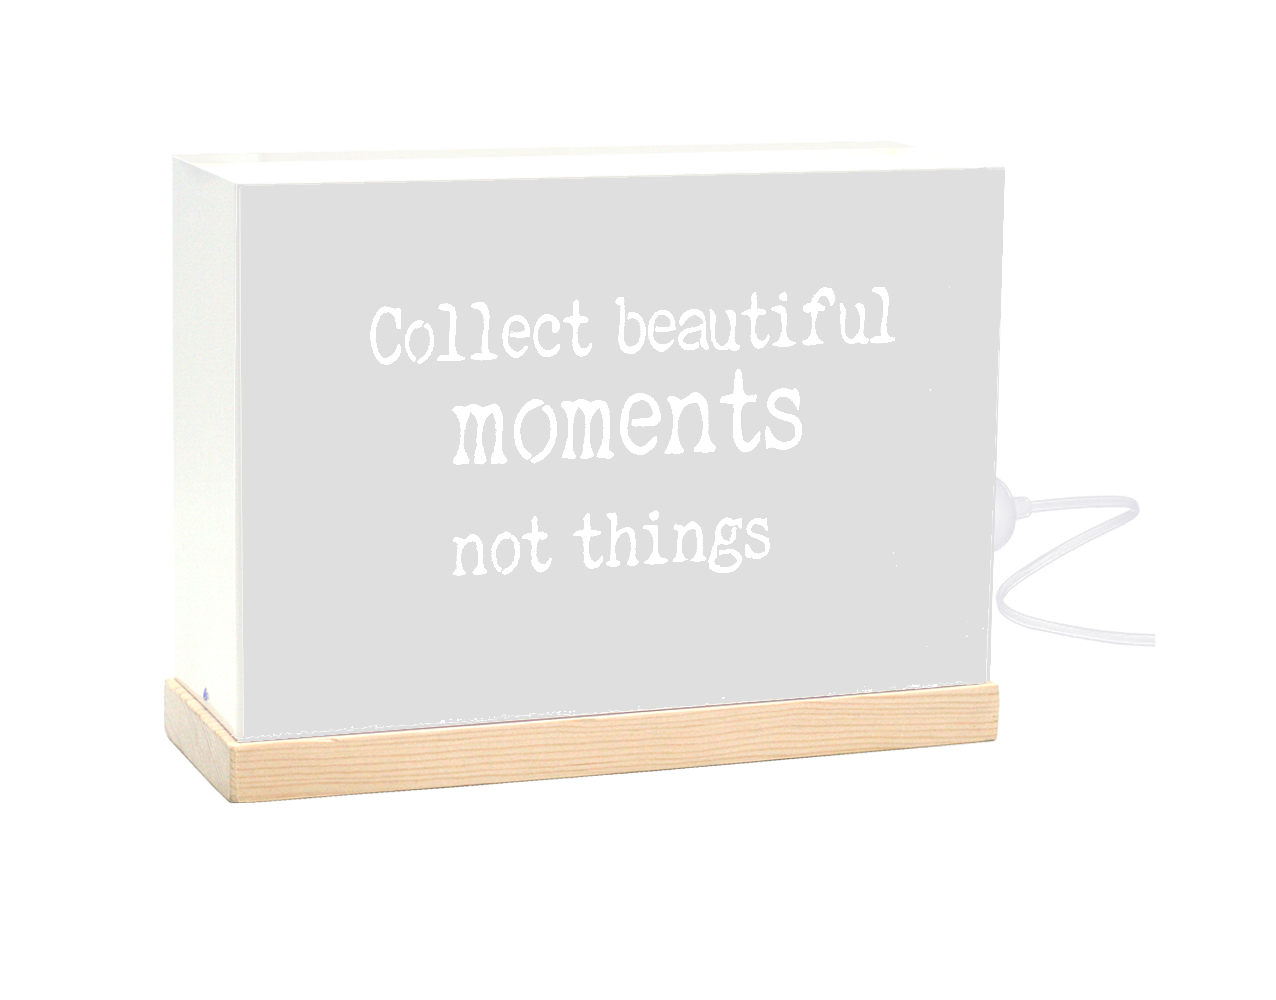 COLLECT BEAUTIFUL MOMENTS NOT THINGS